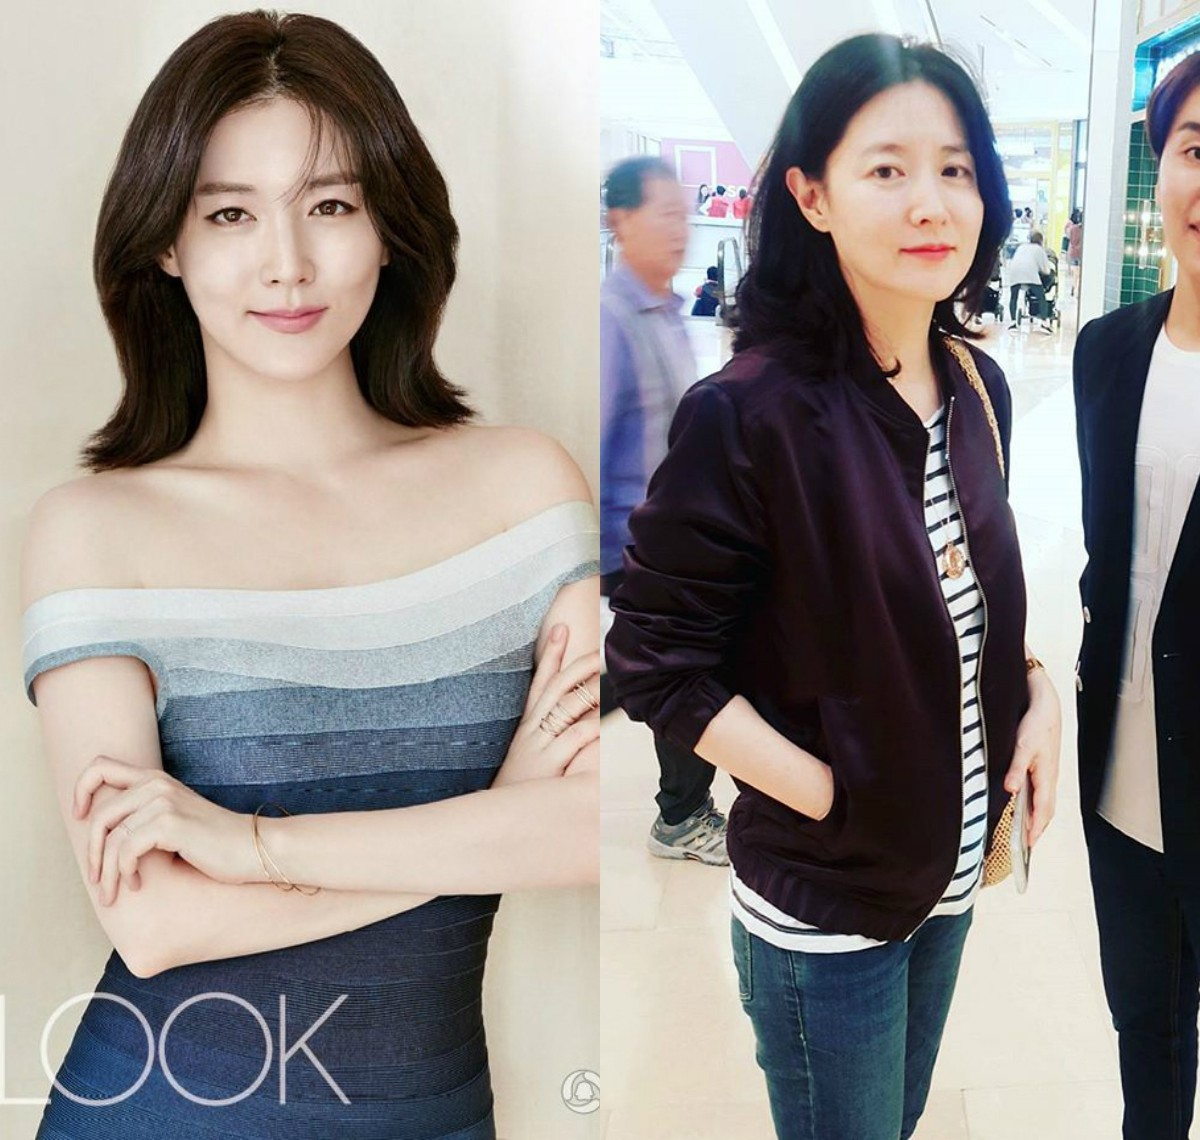 lee-young-ae-1-15351666125041892229158.jpg